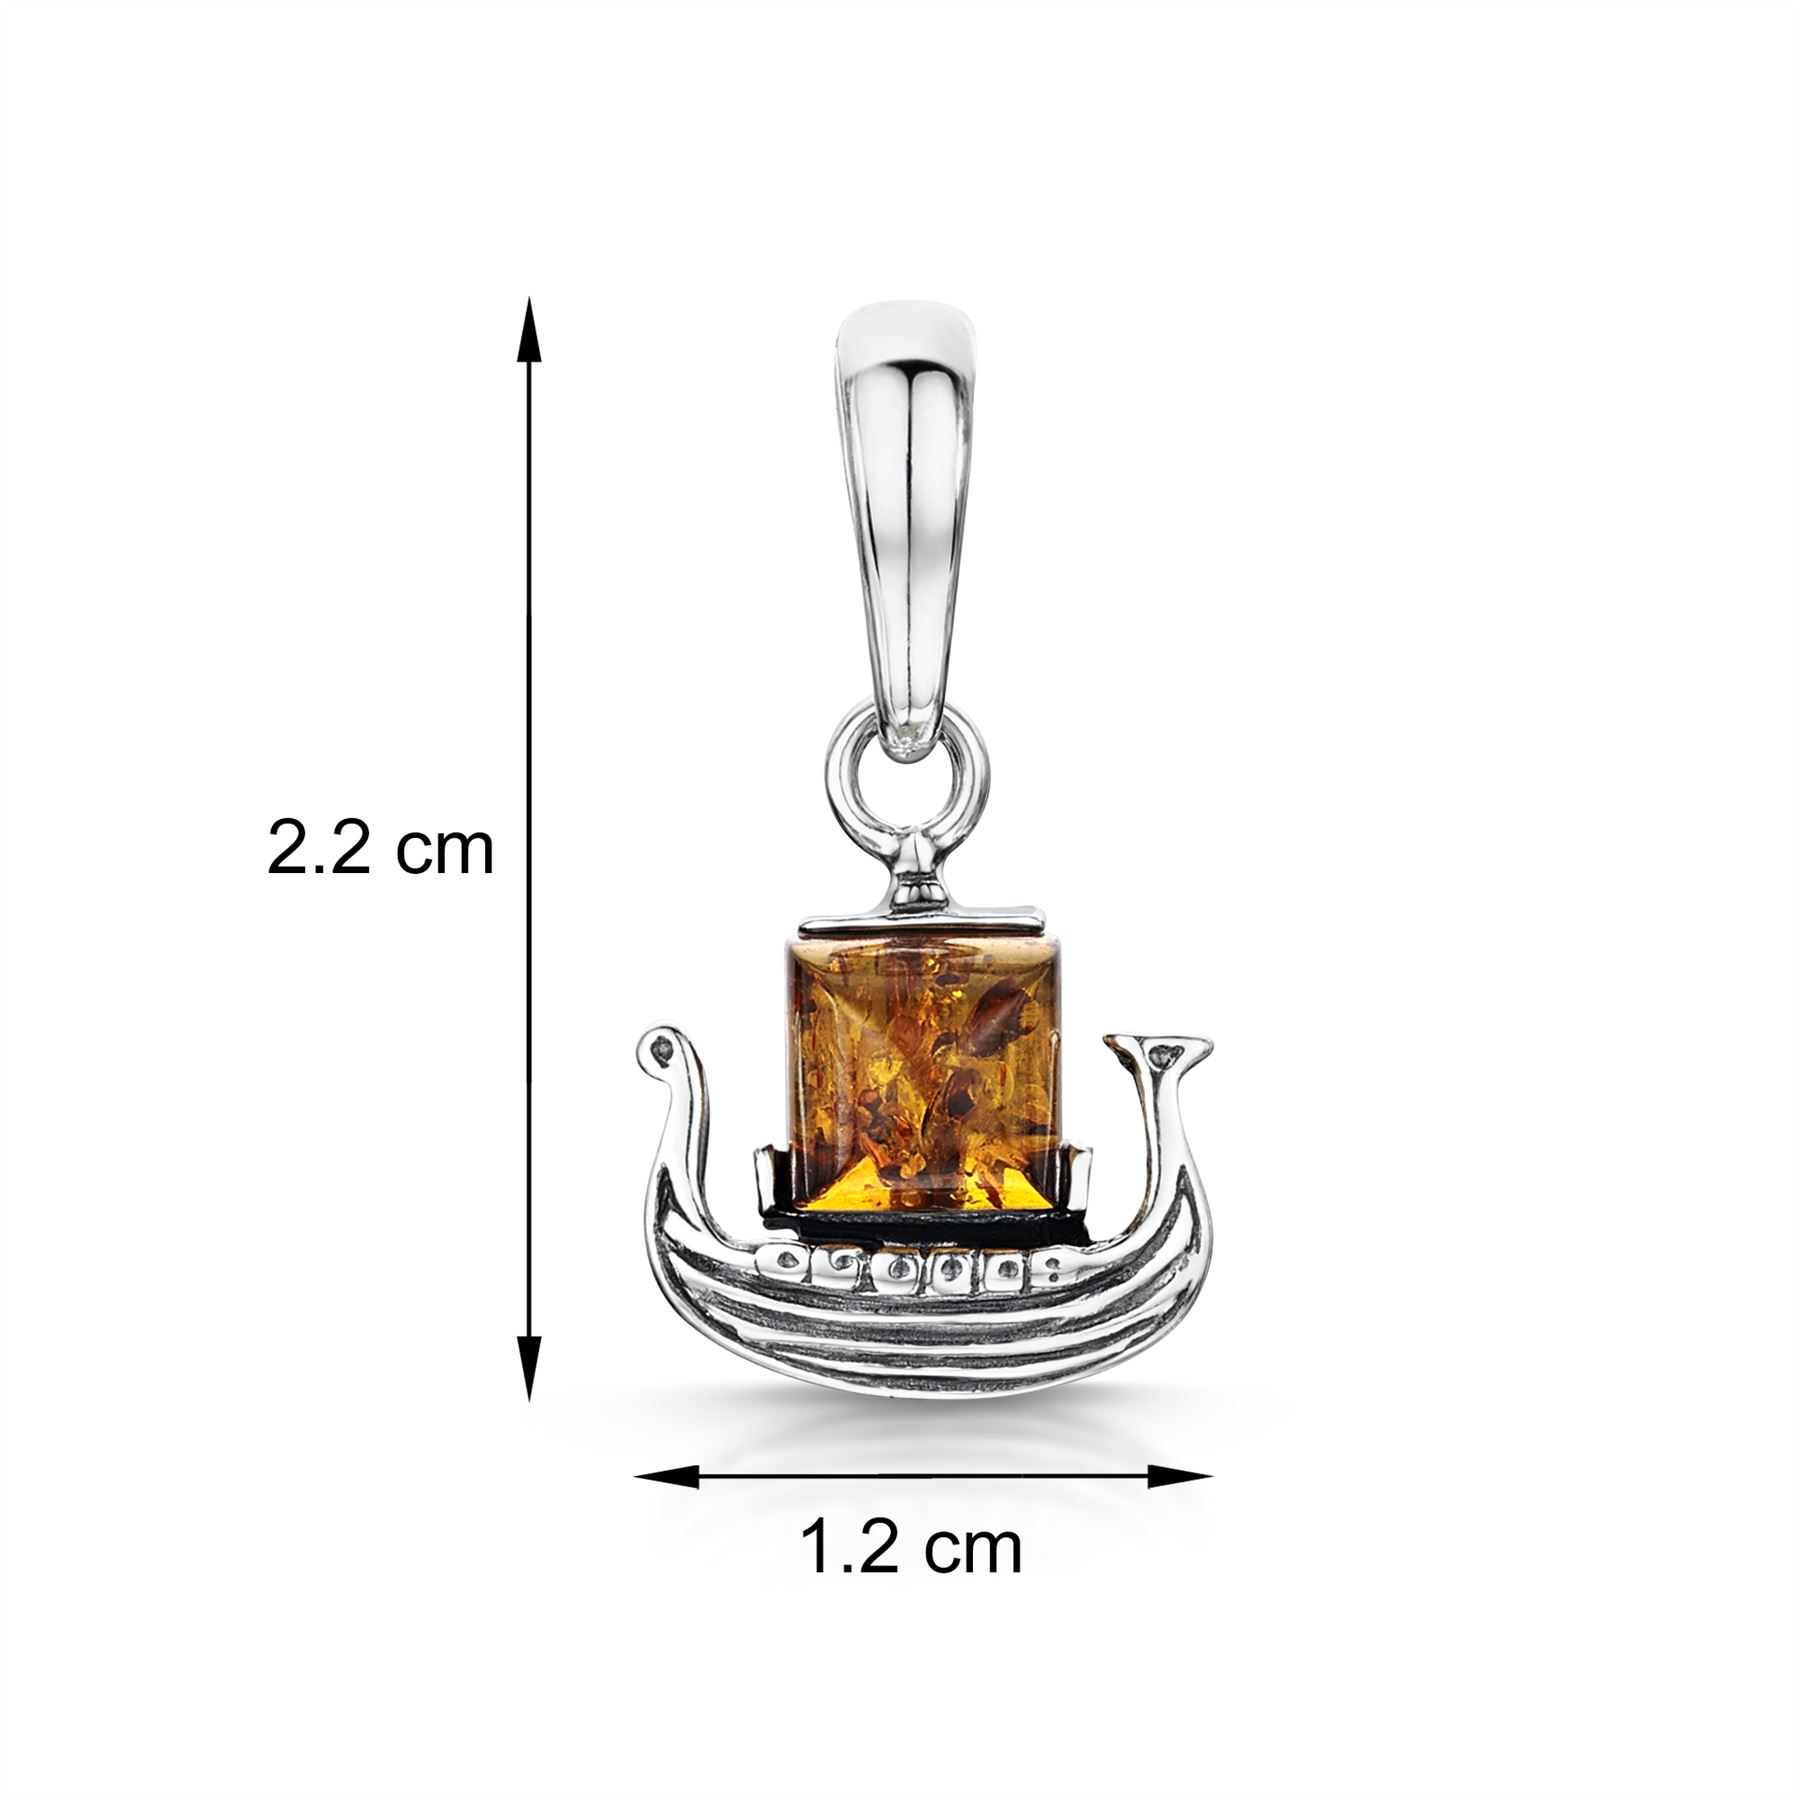 Amberta-Genuine-925-Sterling-Silver-Pendant-with-Natural-Baltic-Amber-Gemstone thumbnail 84